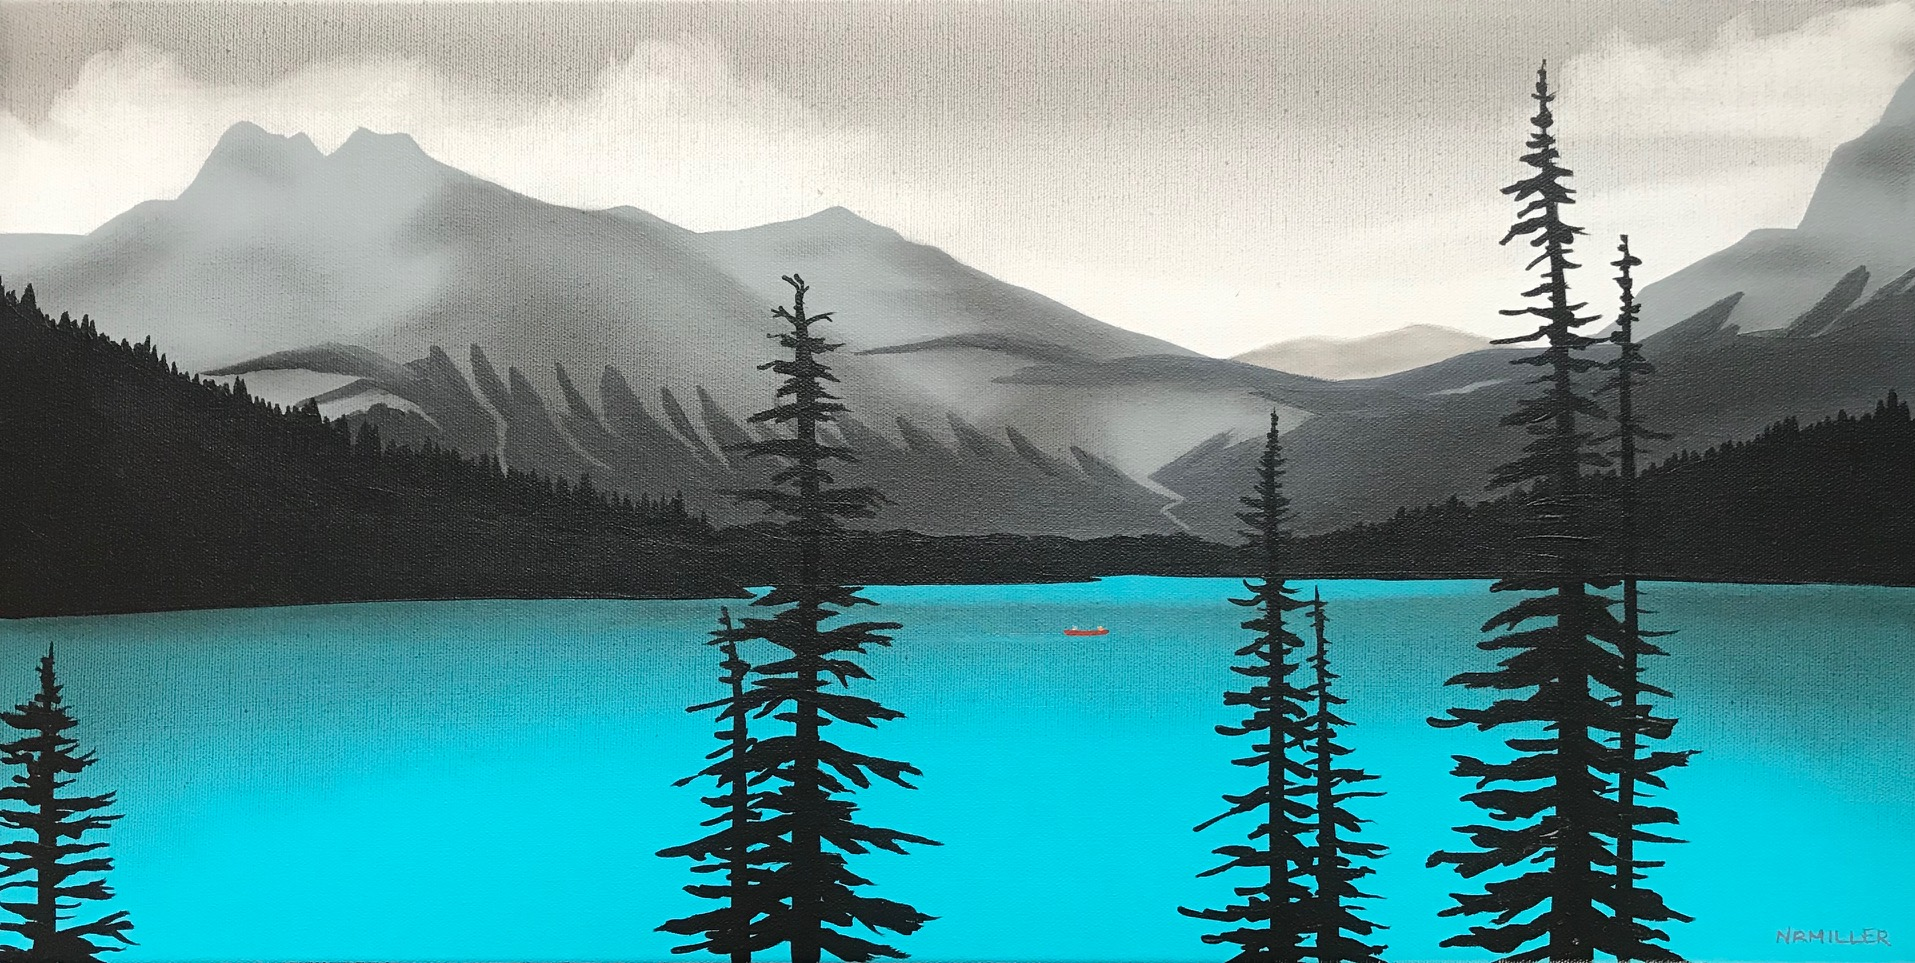 The Allure of Emerald Lake, mixed media painting by Natasha Miller | Effusion Art Gallery + Cast Glass Studio, Invermere BC